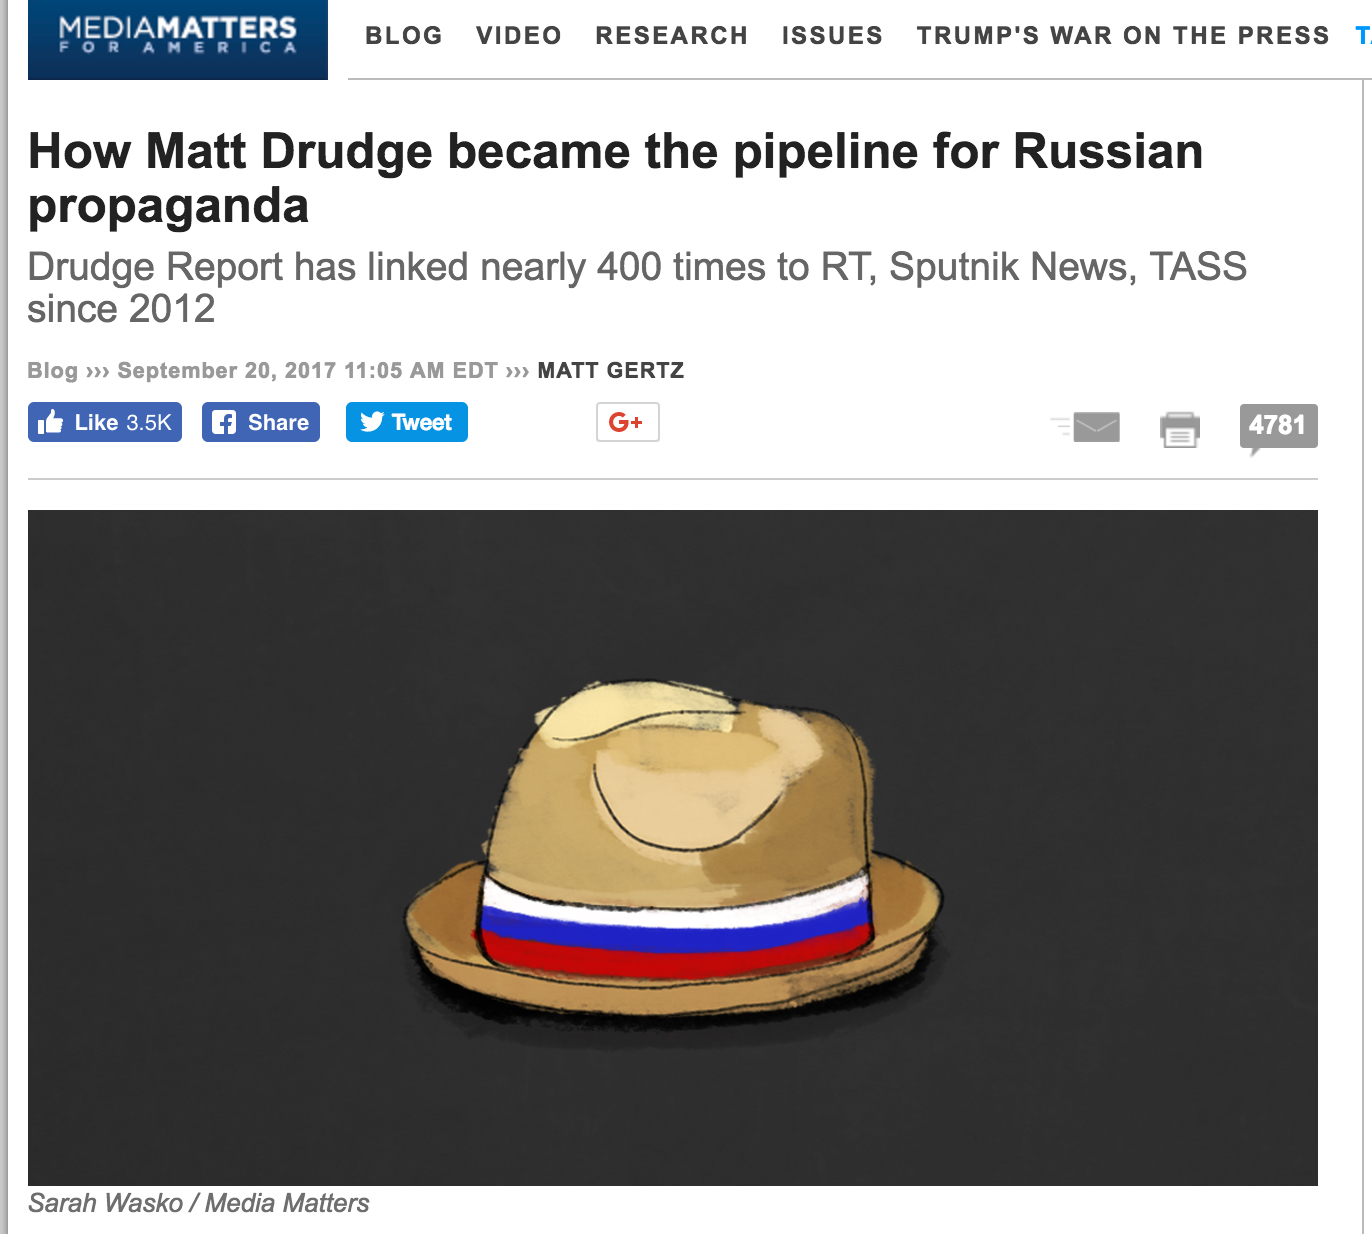 Epic: Matt Drudge Trolls Media Matters' Russia Accusations – By Linking to Russian Media